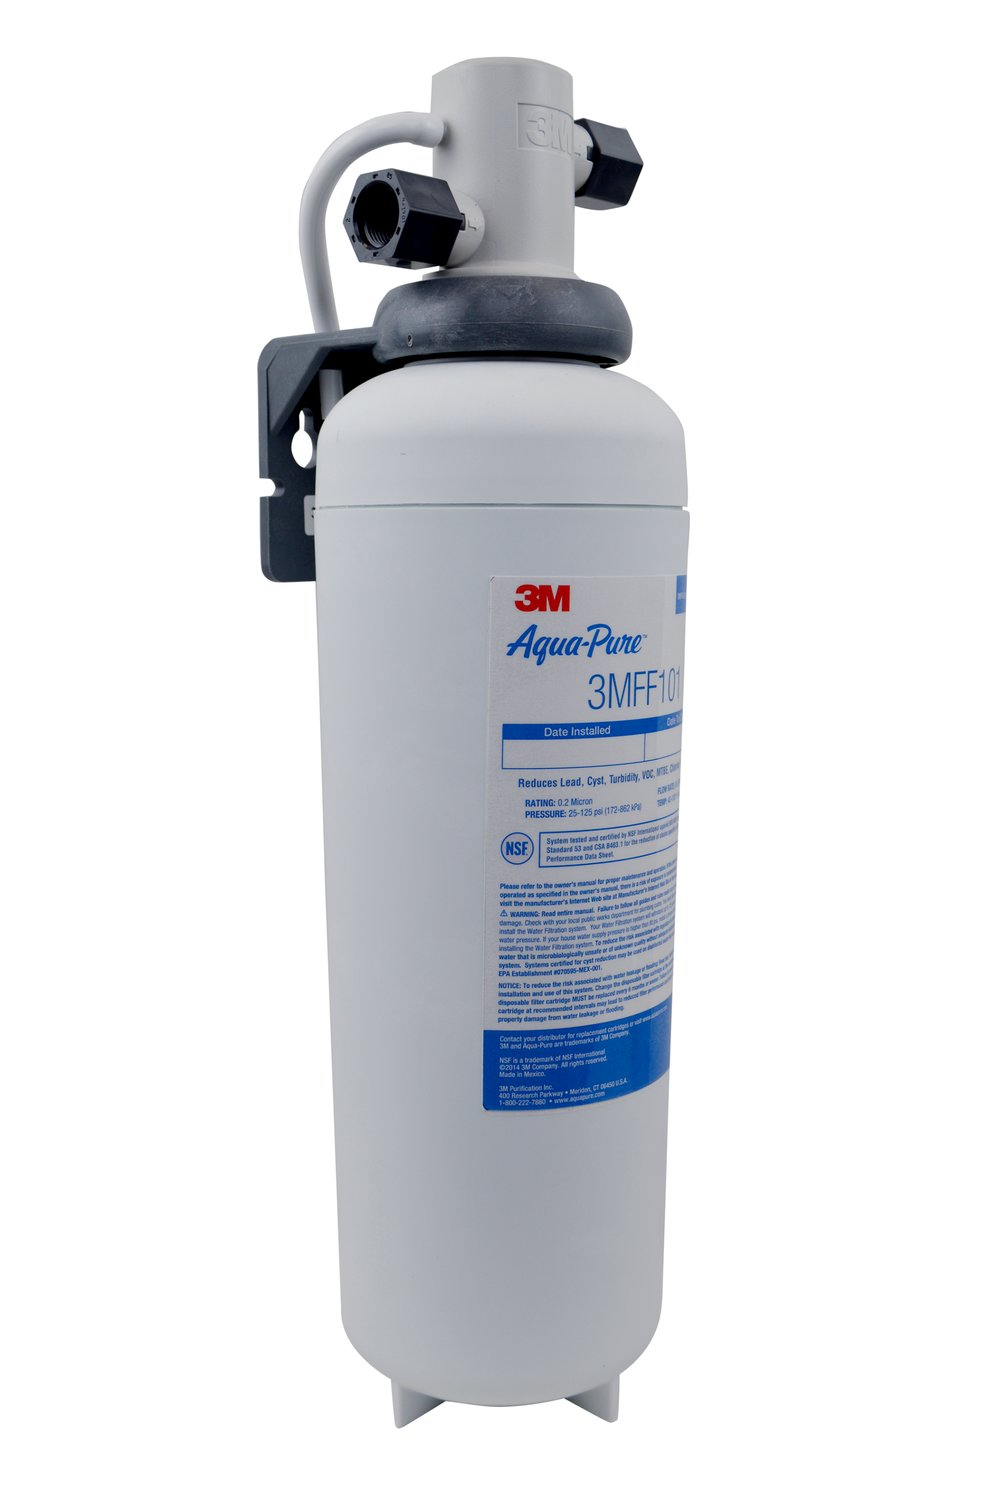 3m Aqua Pure 3mff100 Full Flow Drink Water Filtration System